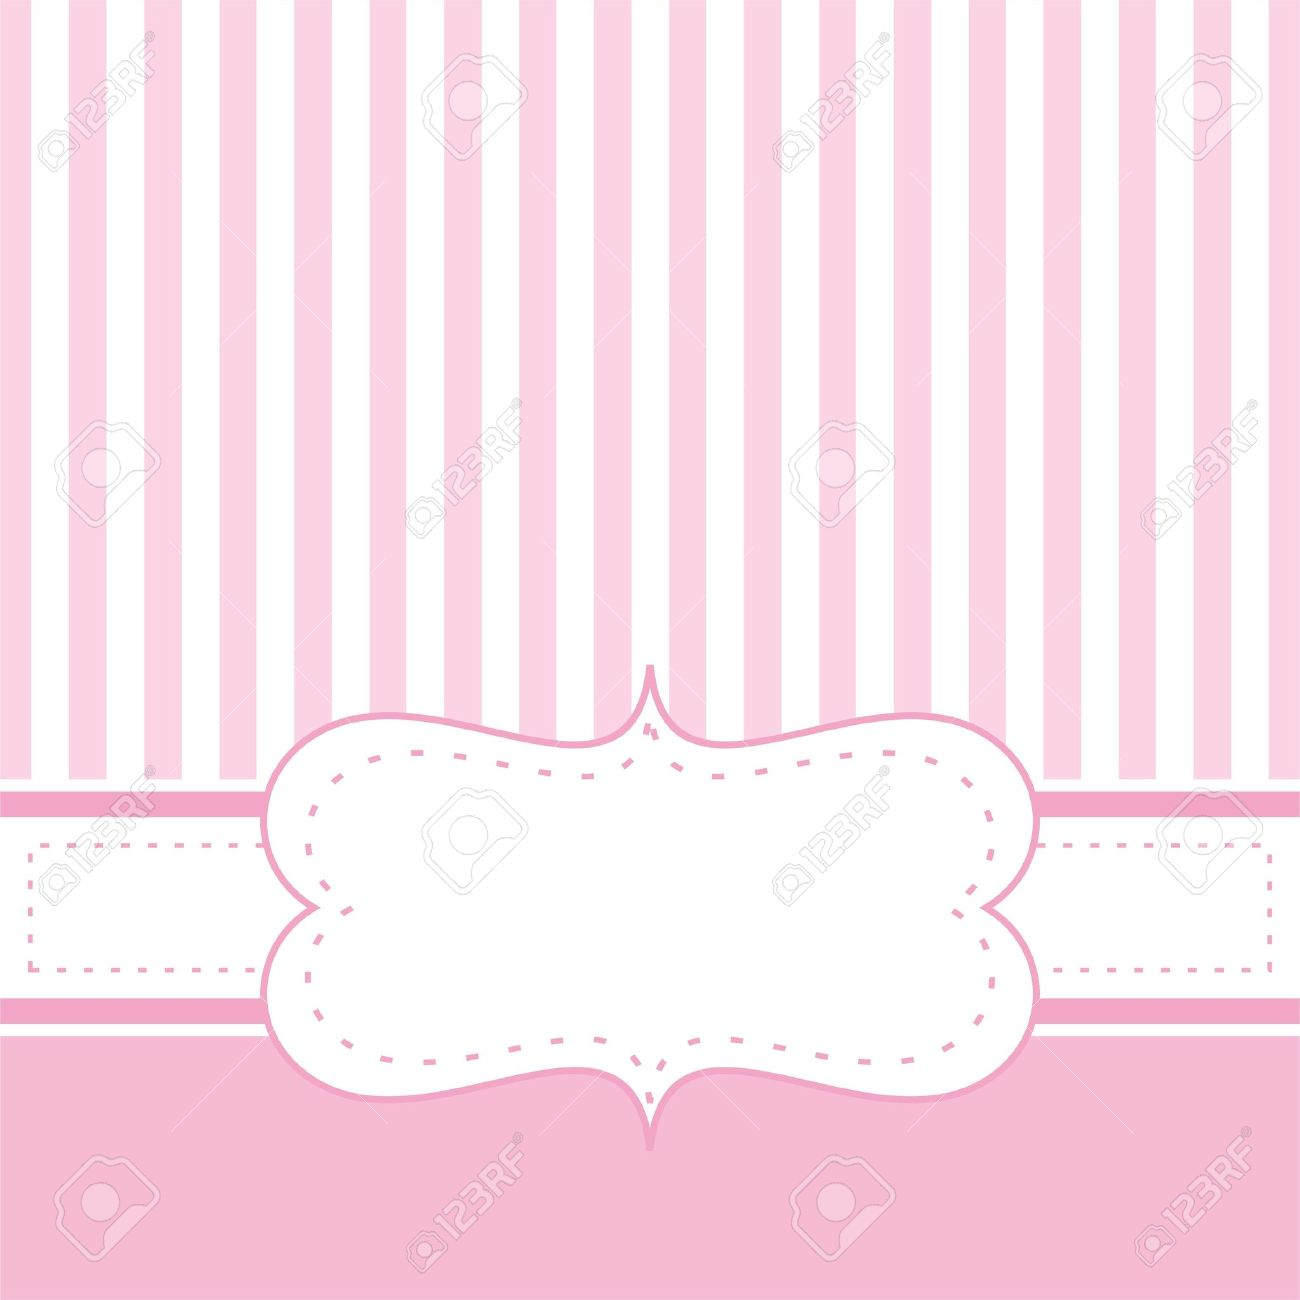 Card invitation template for baby shower, wedding or birthday party with sweet baby pink stripes. Cute background with white space to put your own text. Stock Vector - 14653056